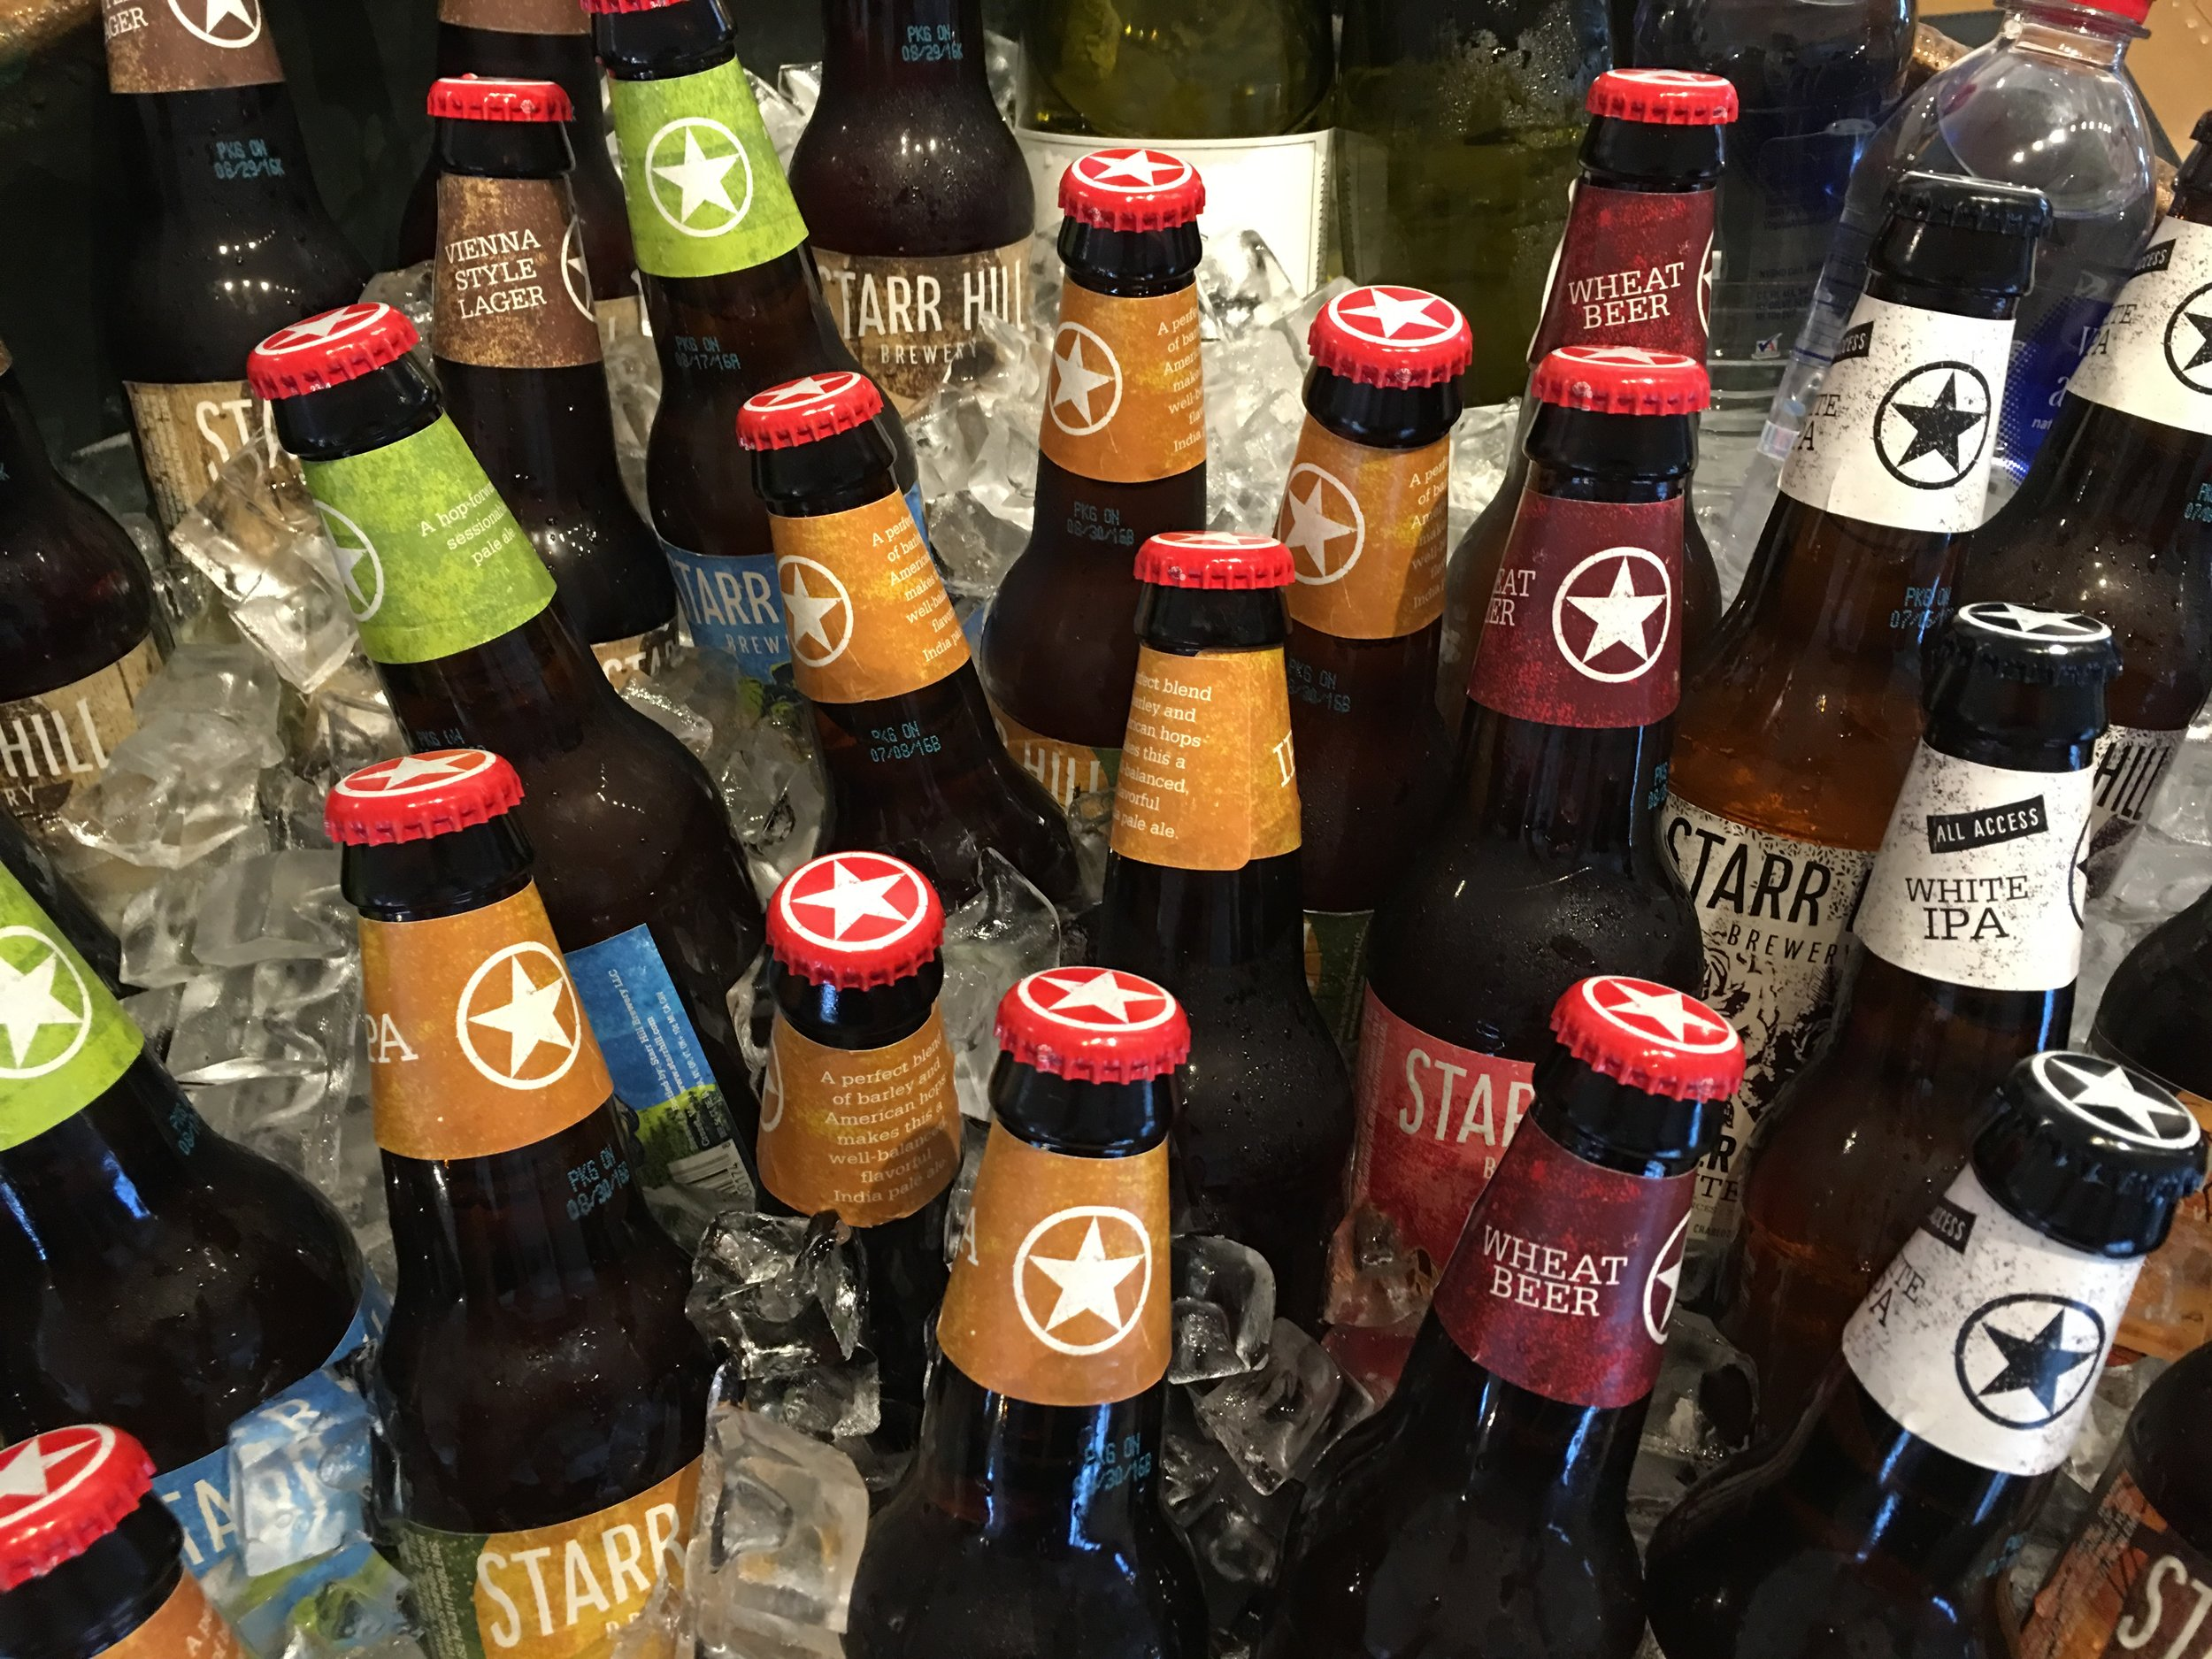 Grateful, Last Leaf, Northern Lights or The Love...Sample our Selection and Find Your Favorite Starr Hill Craft Beer.